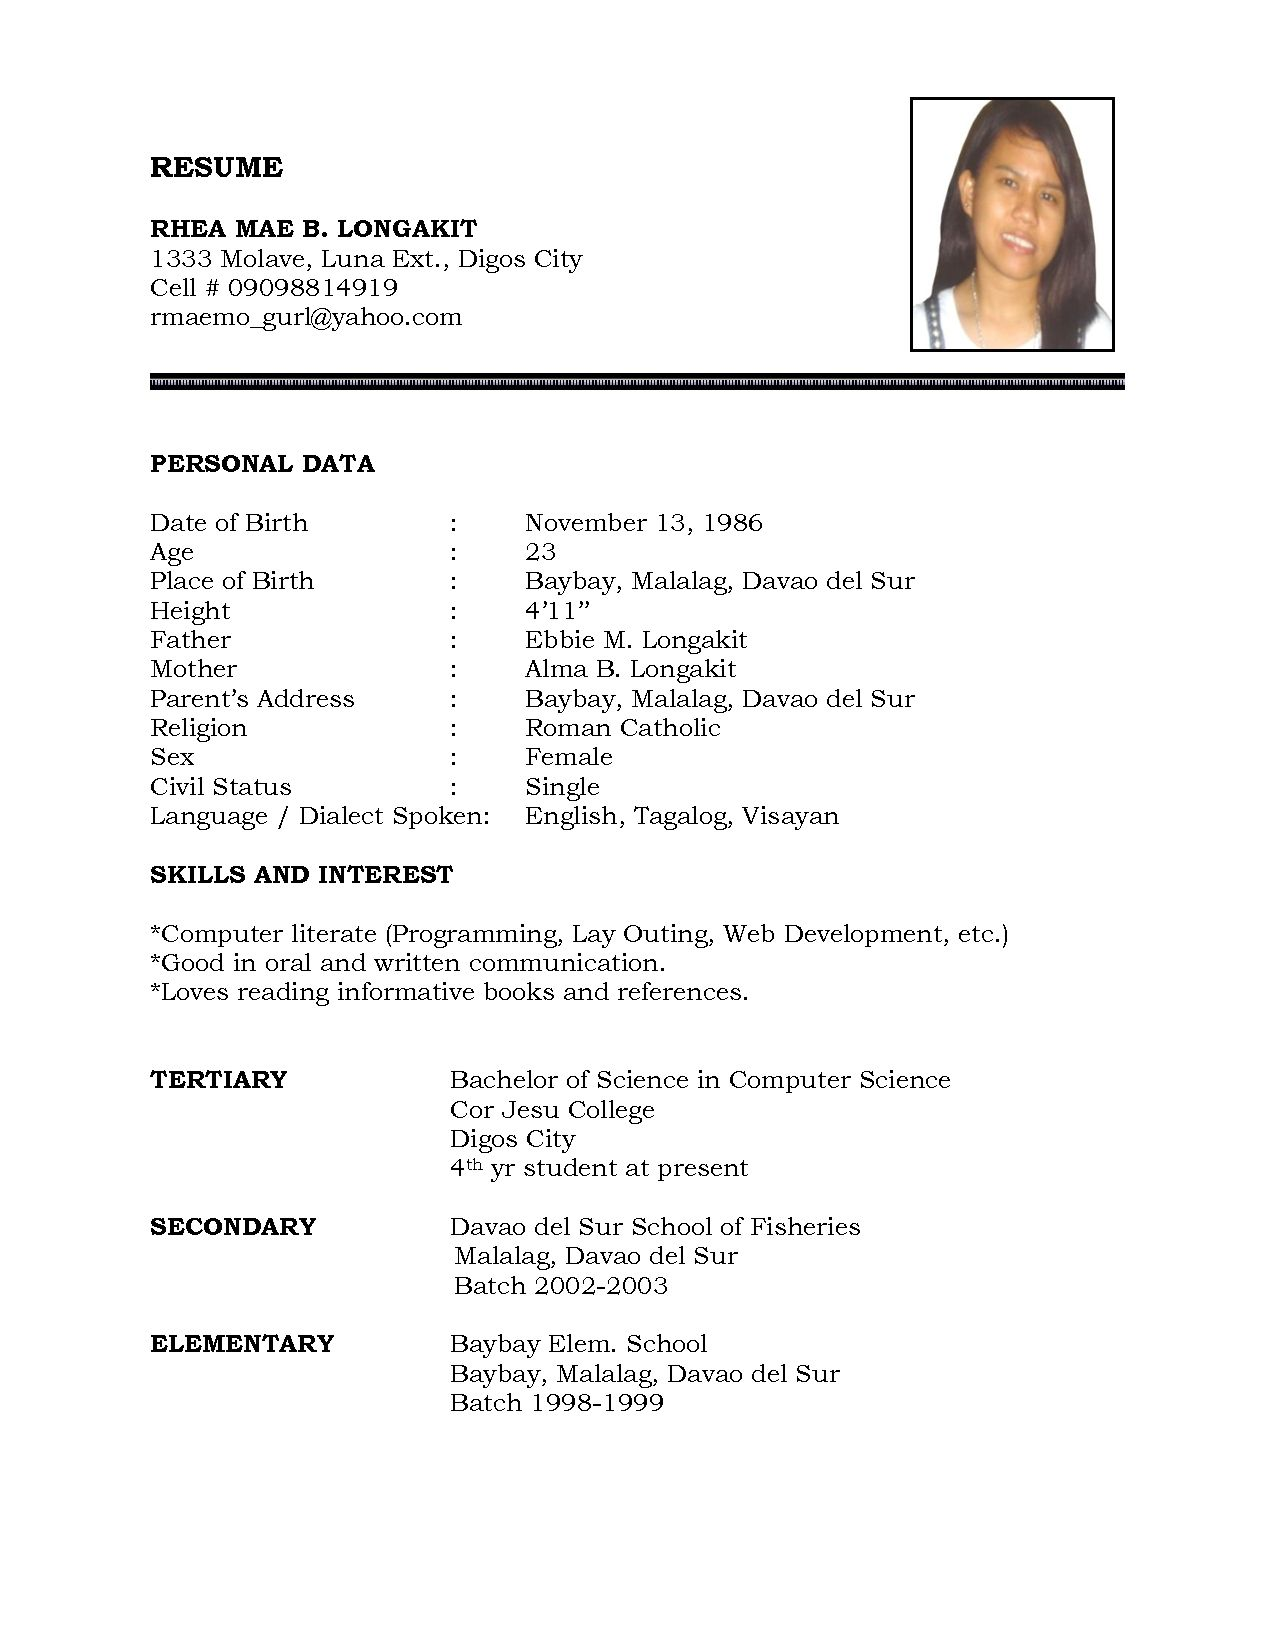 Resume Sample Simple De9e2a60f The Simple Format Resume For Job